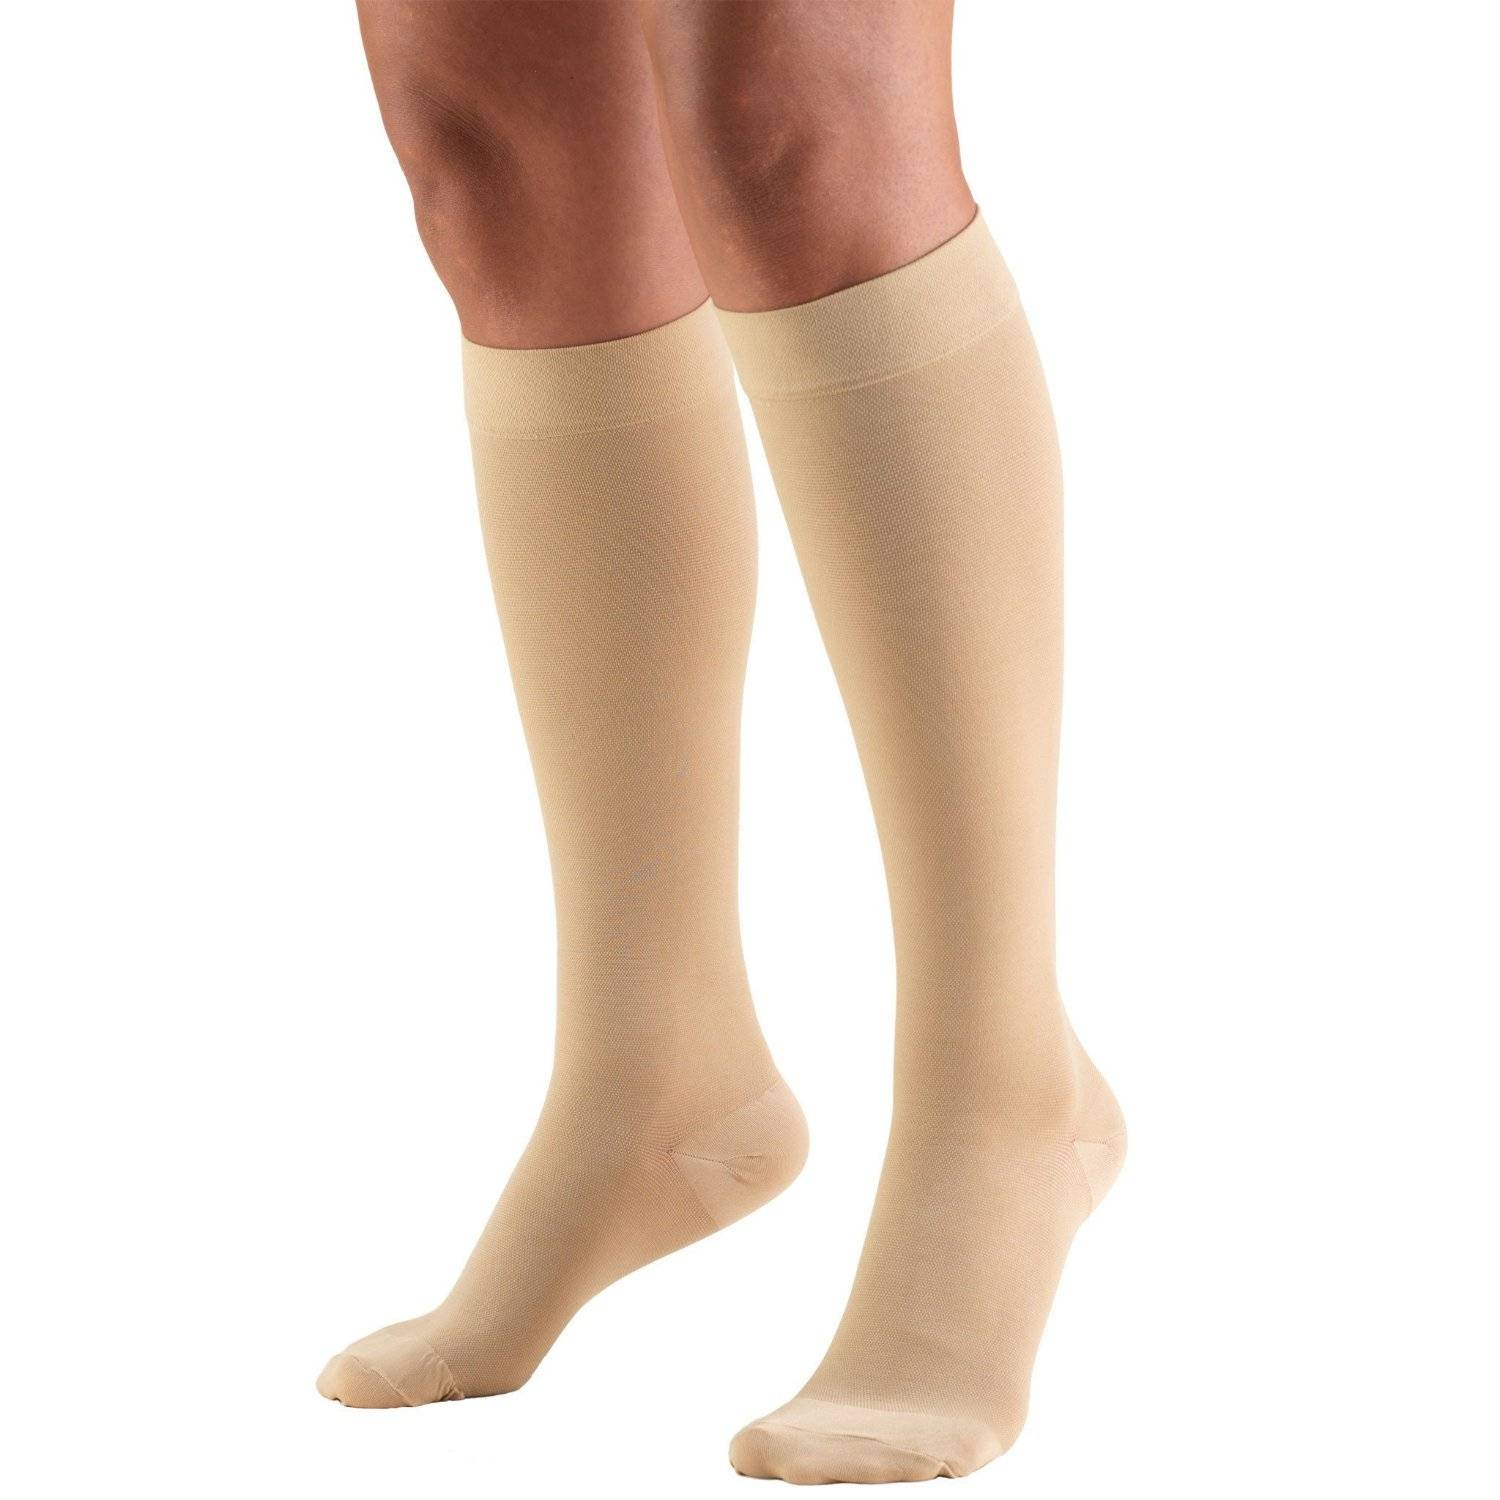 Thigh High Closed Toe Medical Stockings